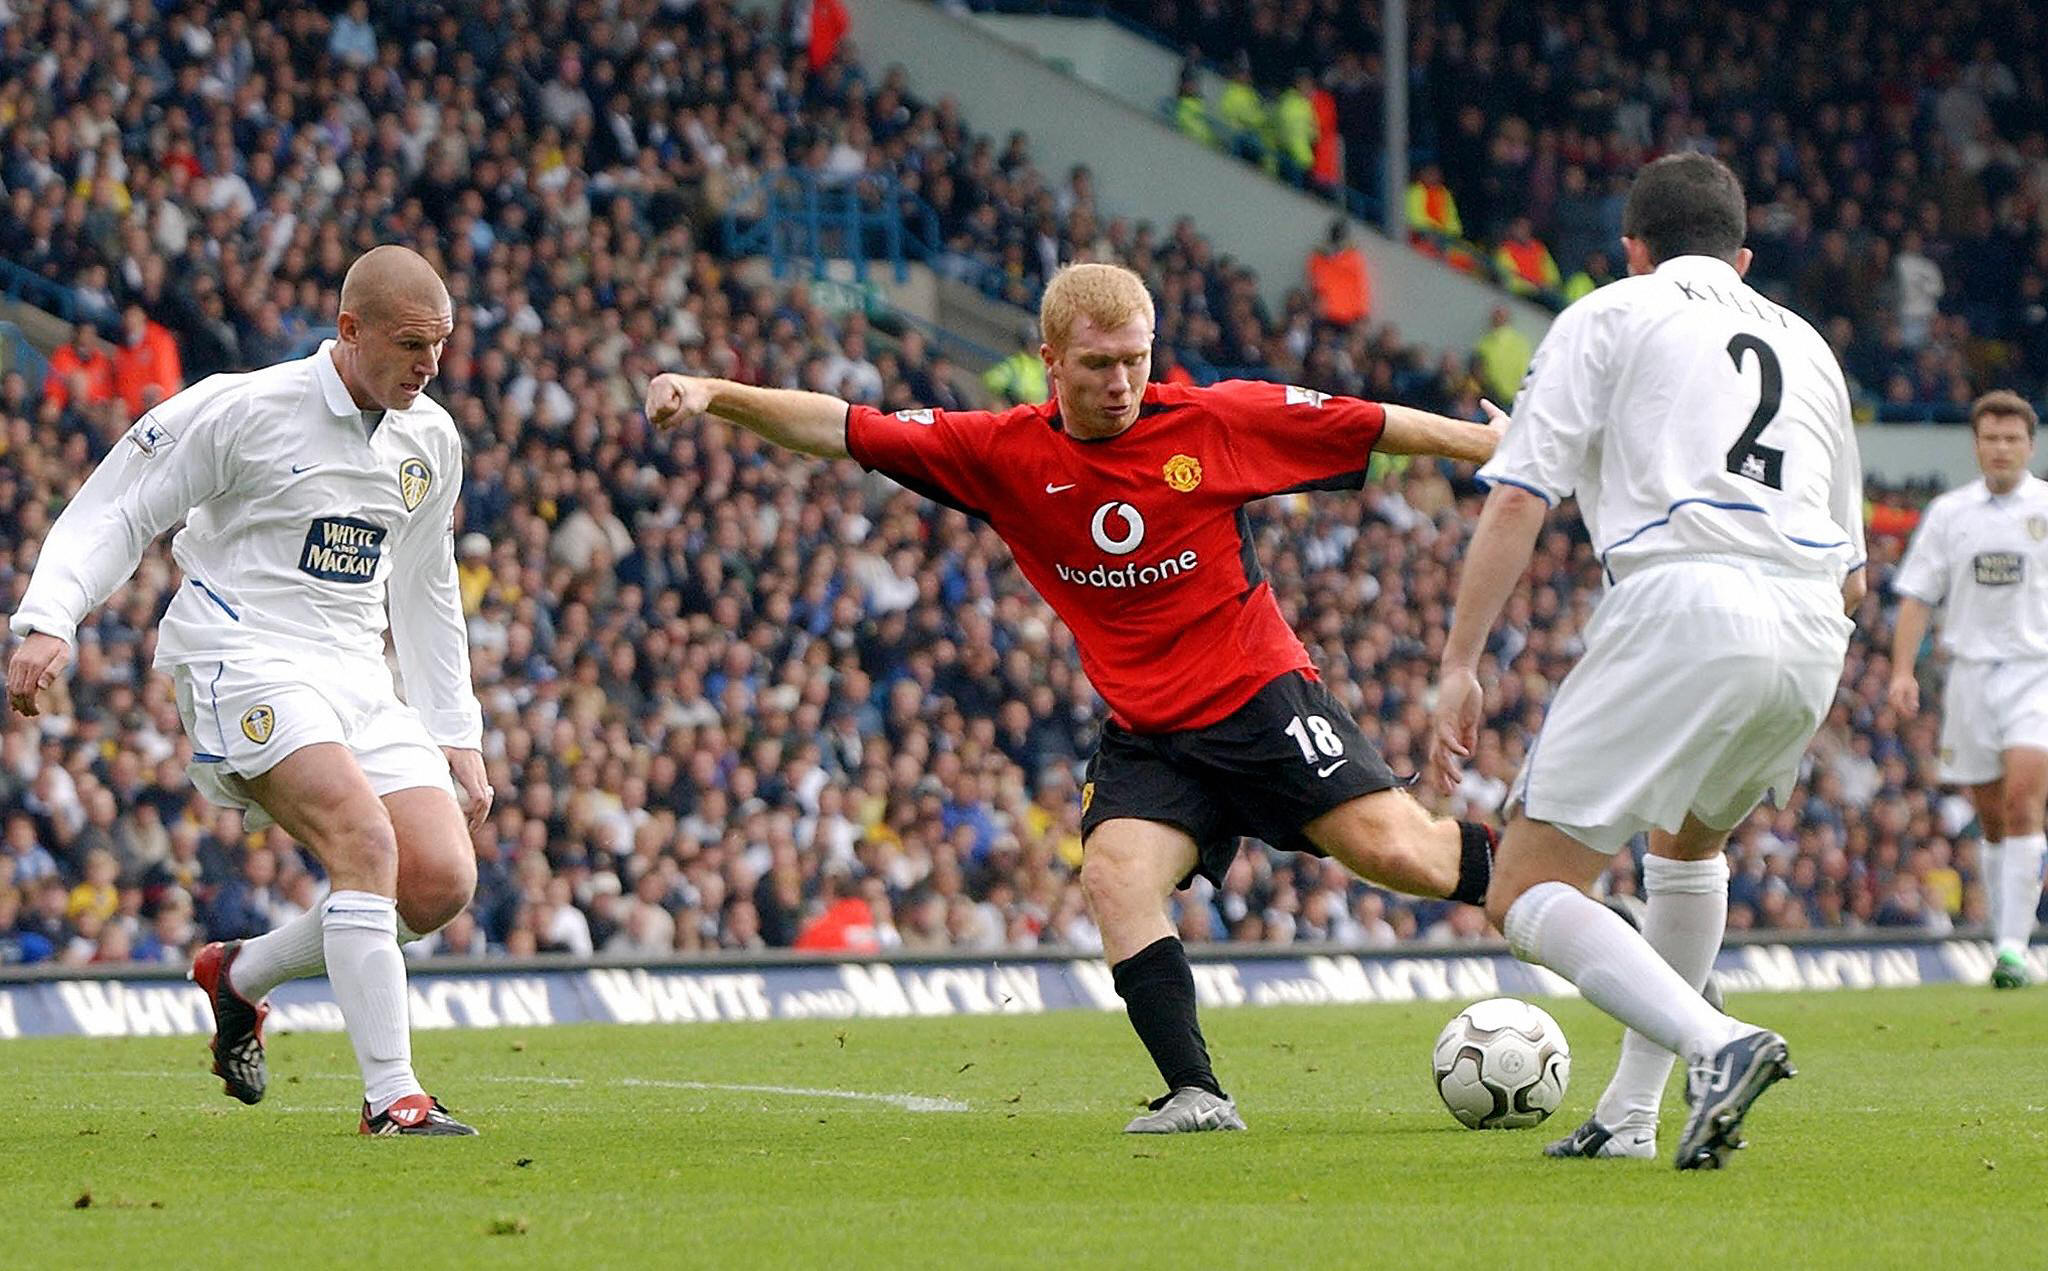 Paul Scholes reveals the most hostile game he ever played in